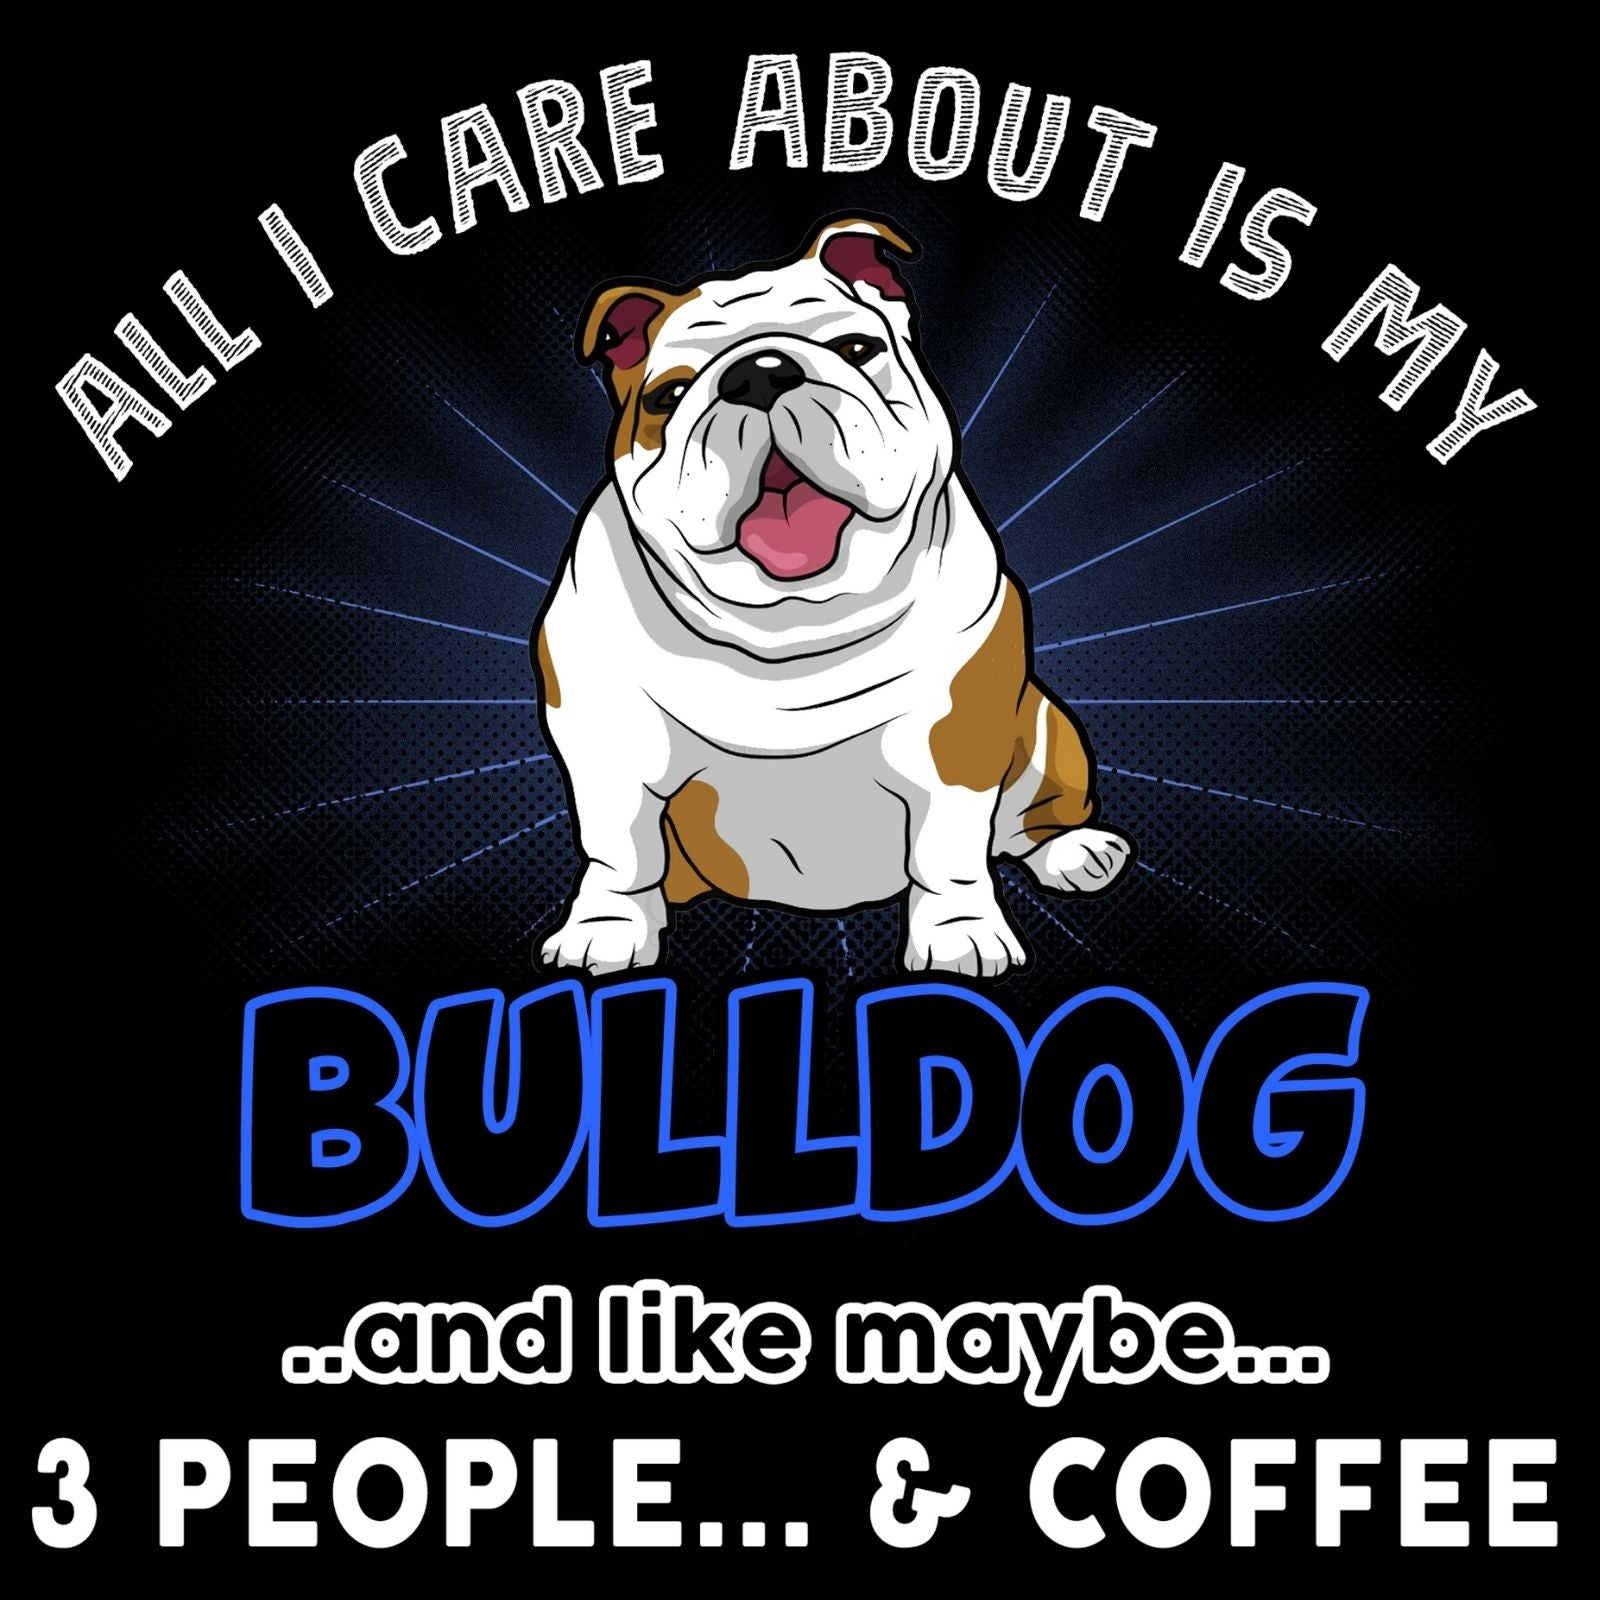 All I Care About Is My Bulldog - Bastard Graphics